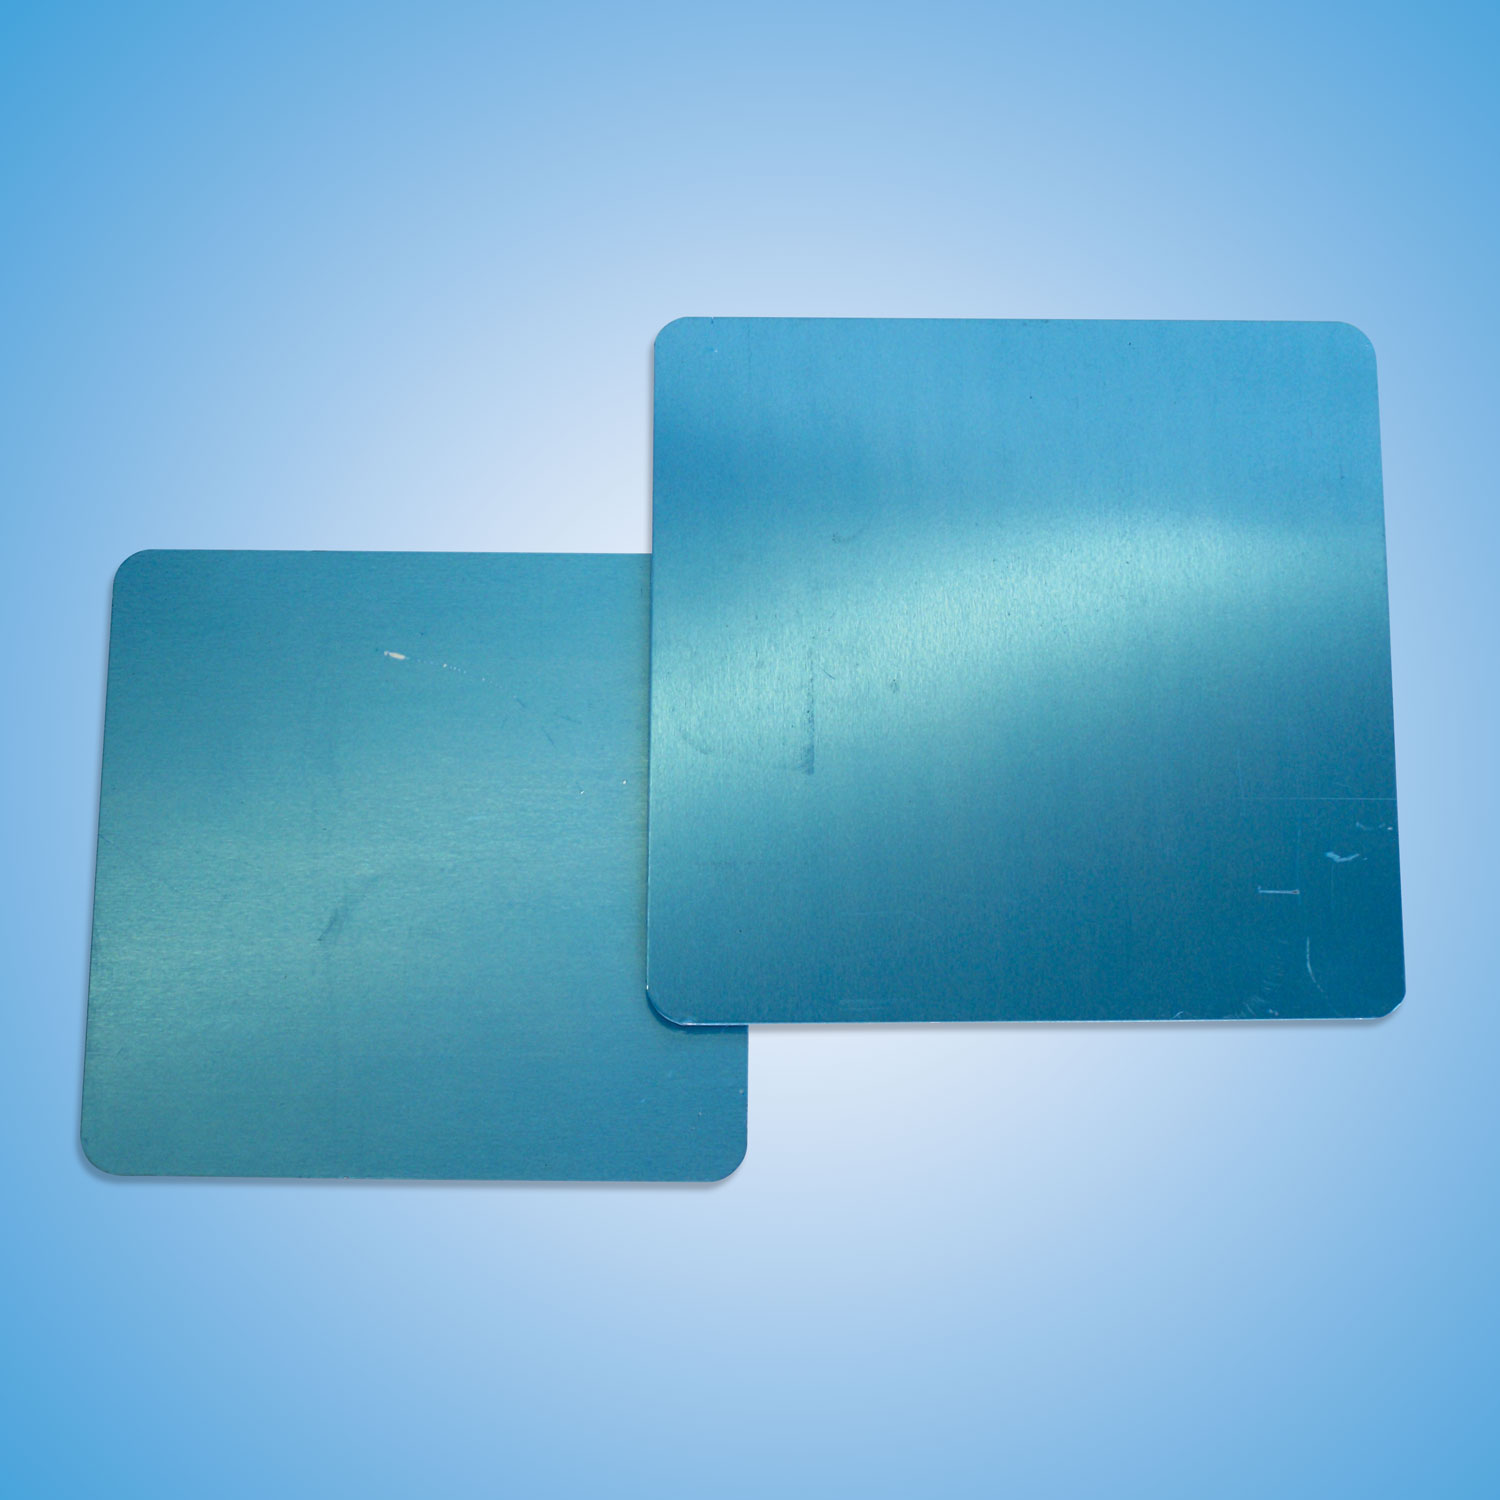 Chute Pack Plates   Aluminum replacement plates for chute pack.   Small Plate  Part #40567.5X7.5SQ — $26   Large Plate  Part #4056875SQUARE — $26